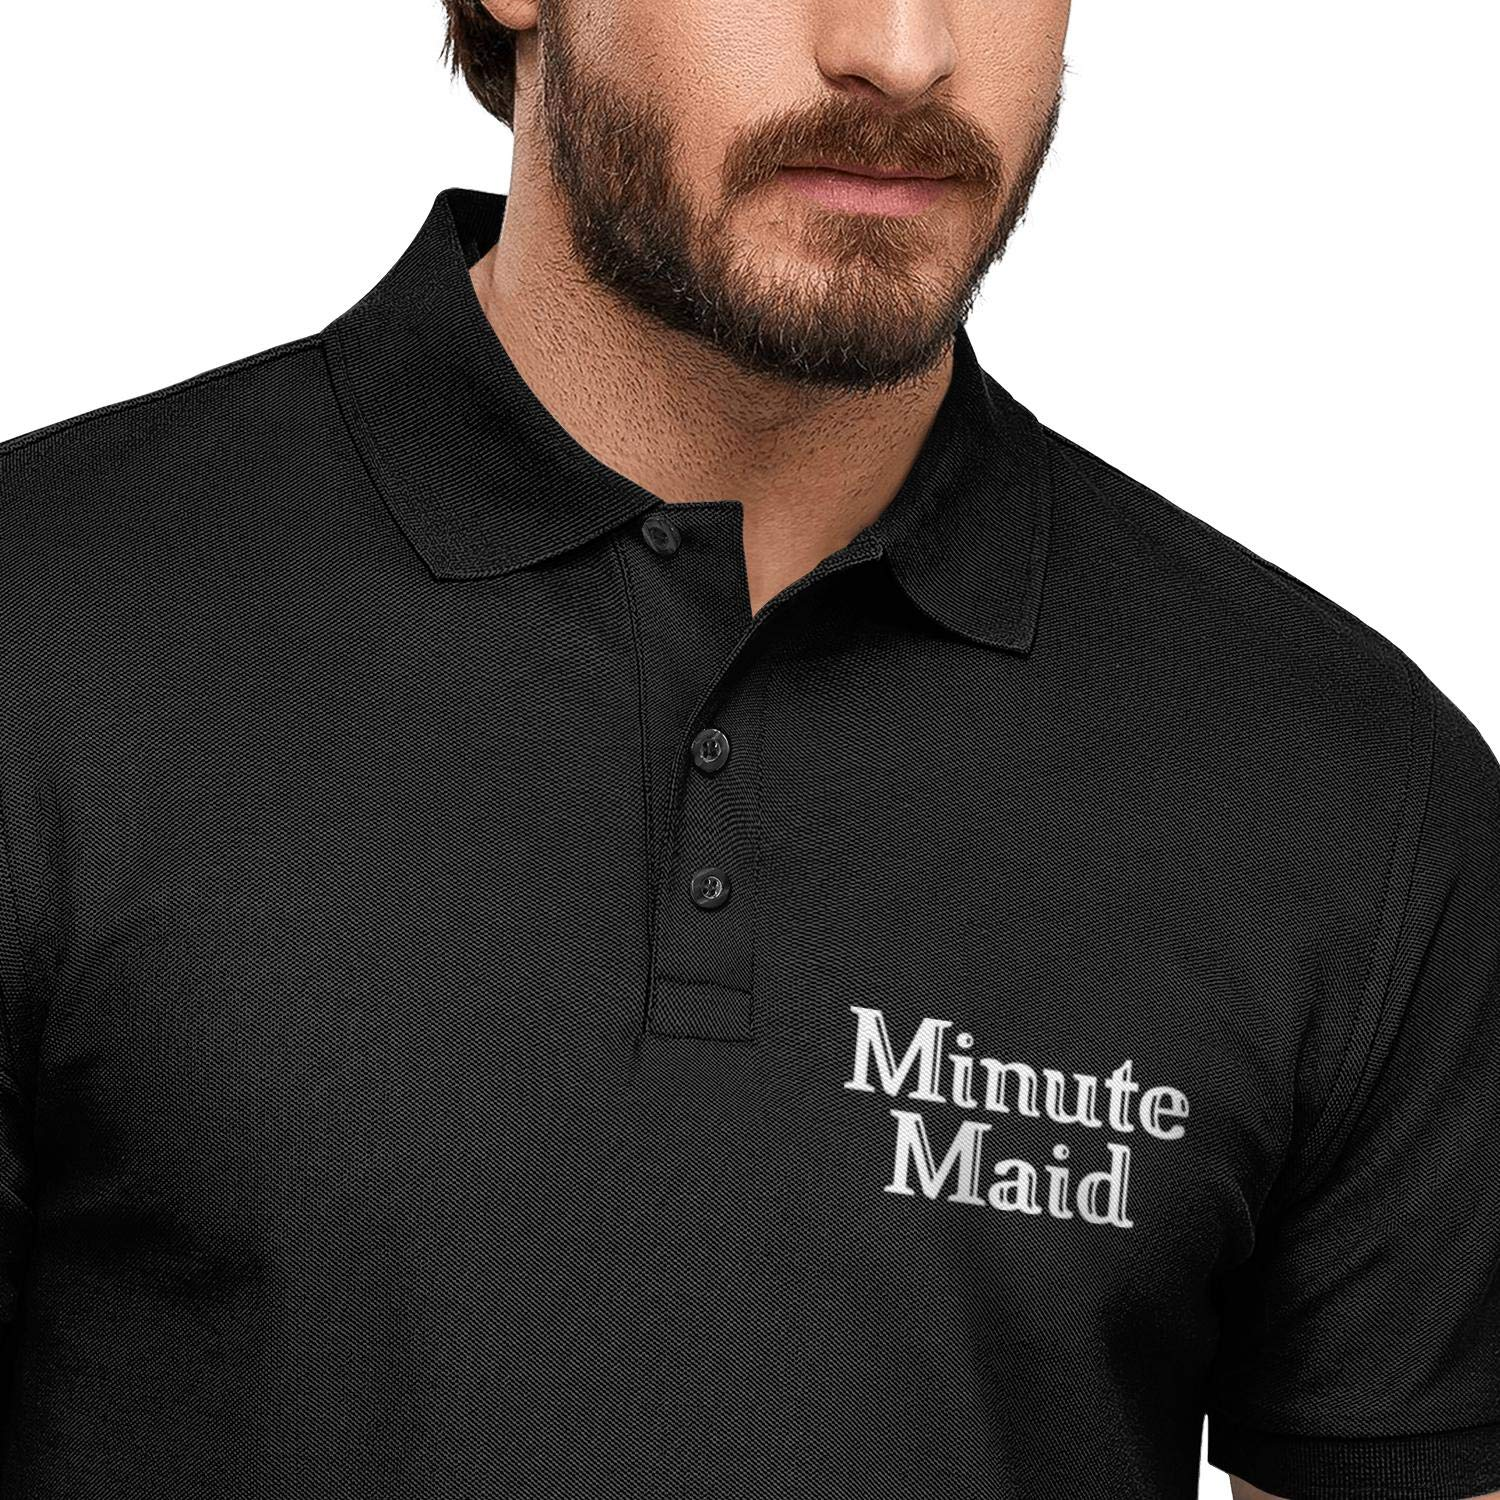 XAAI Mens Quick-Dry Pique Polo T Shirt Fitness Minute Maid Orange Juice Adjustable Athletic Short-Sleeves